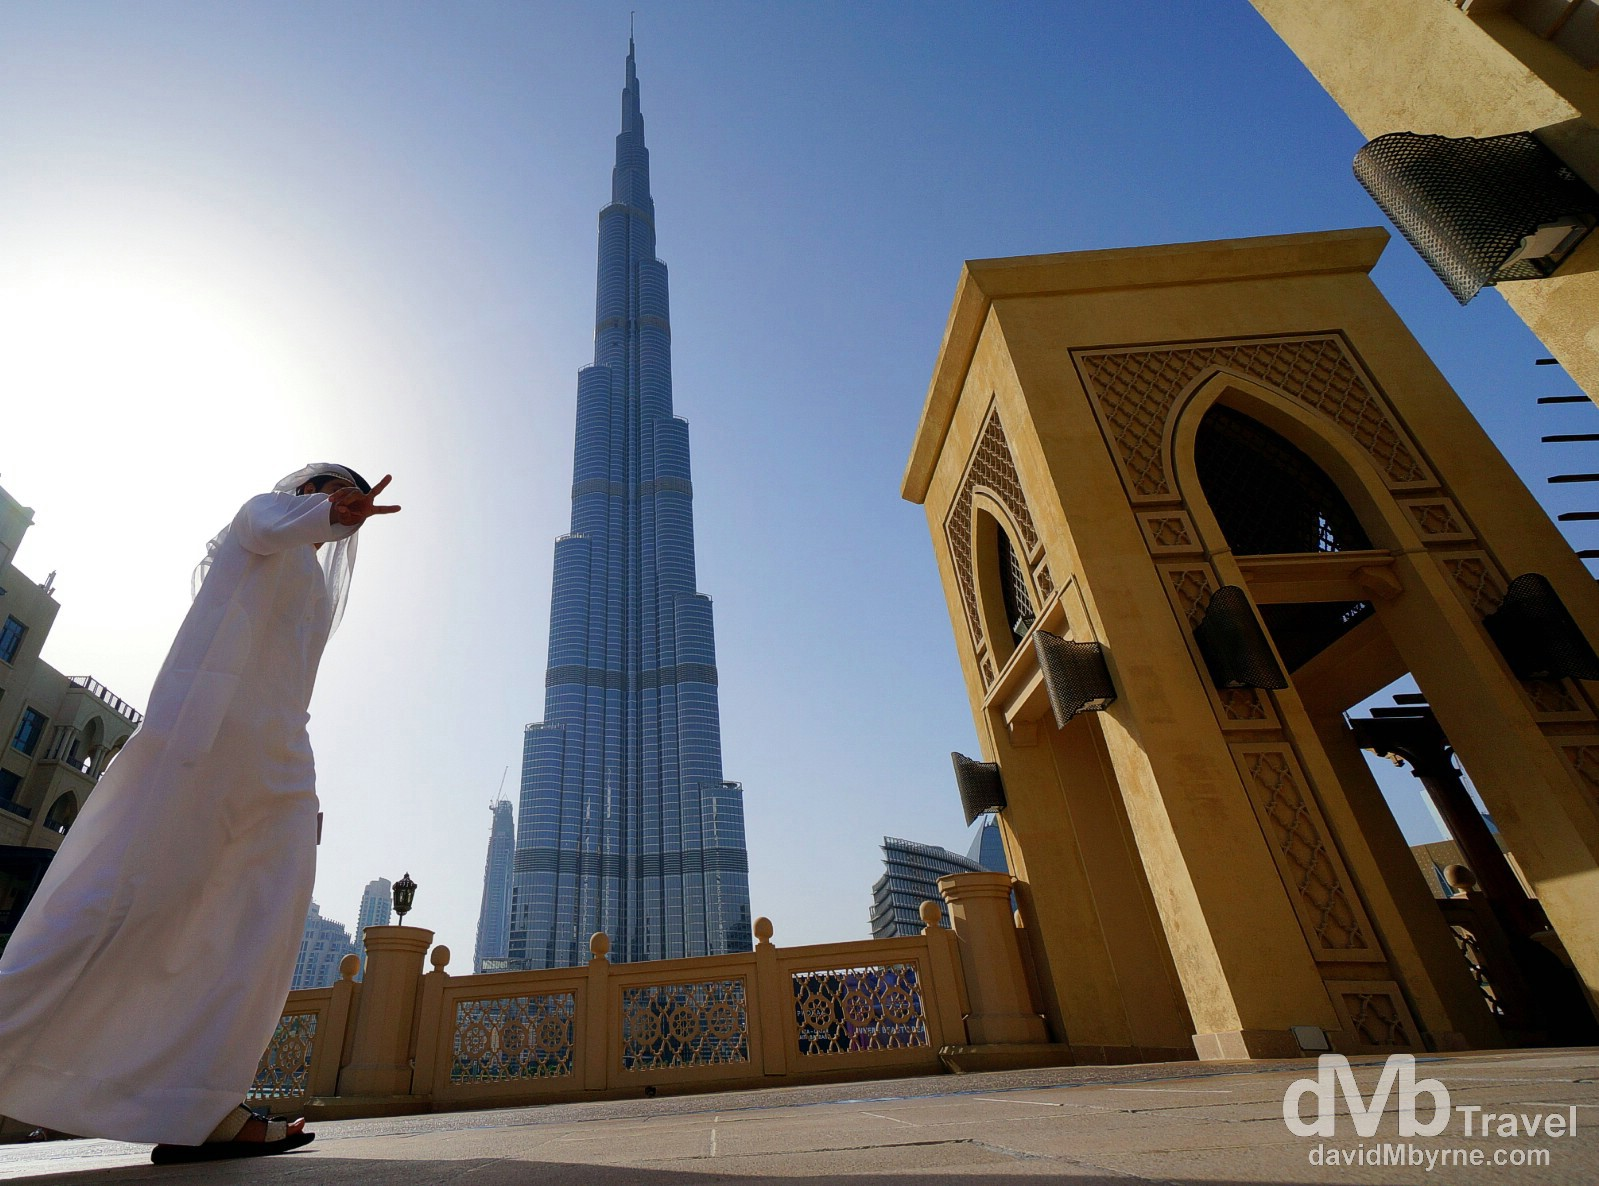 V sign at the base of the 829.8-metre Burj Khalifa, the tallest building in the world. Dubai, UAE. April 14th, 2014.